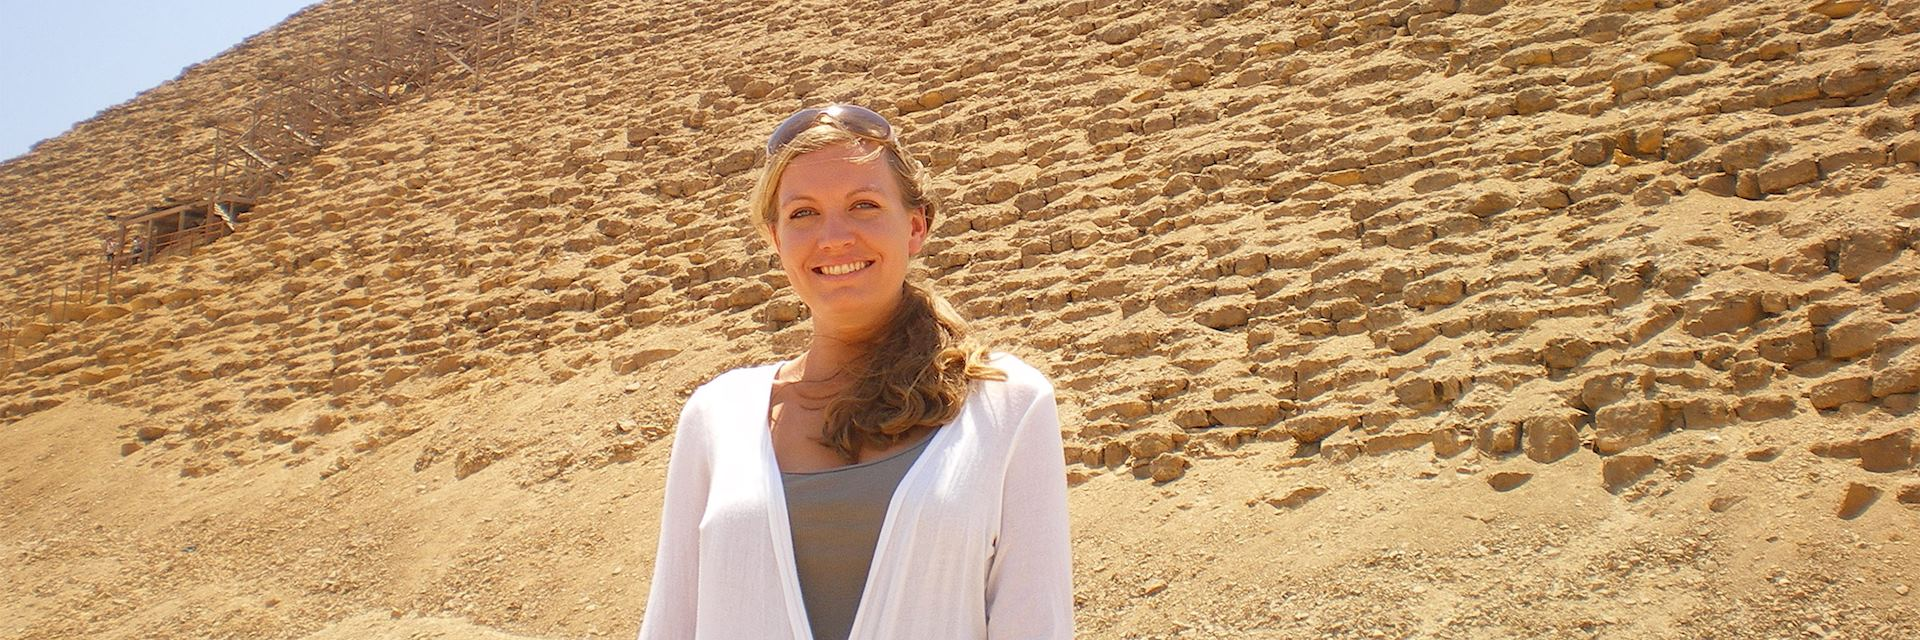 Emma in Dashur, Egypt